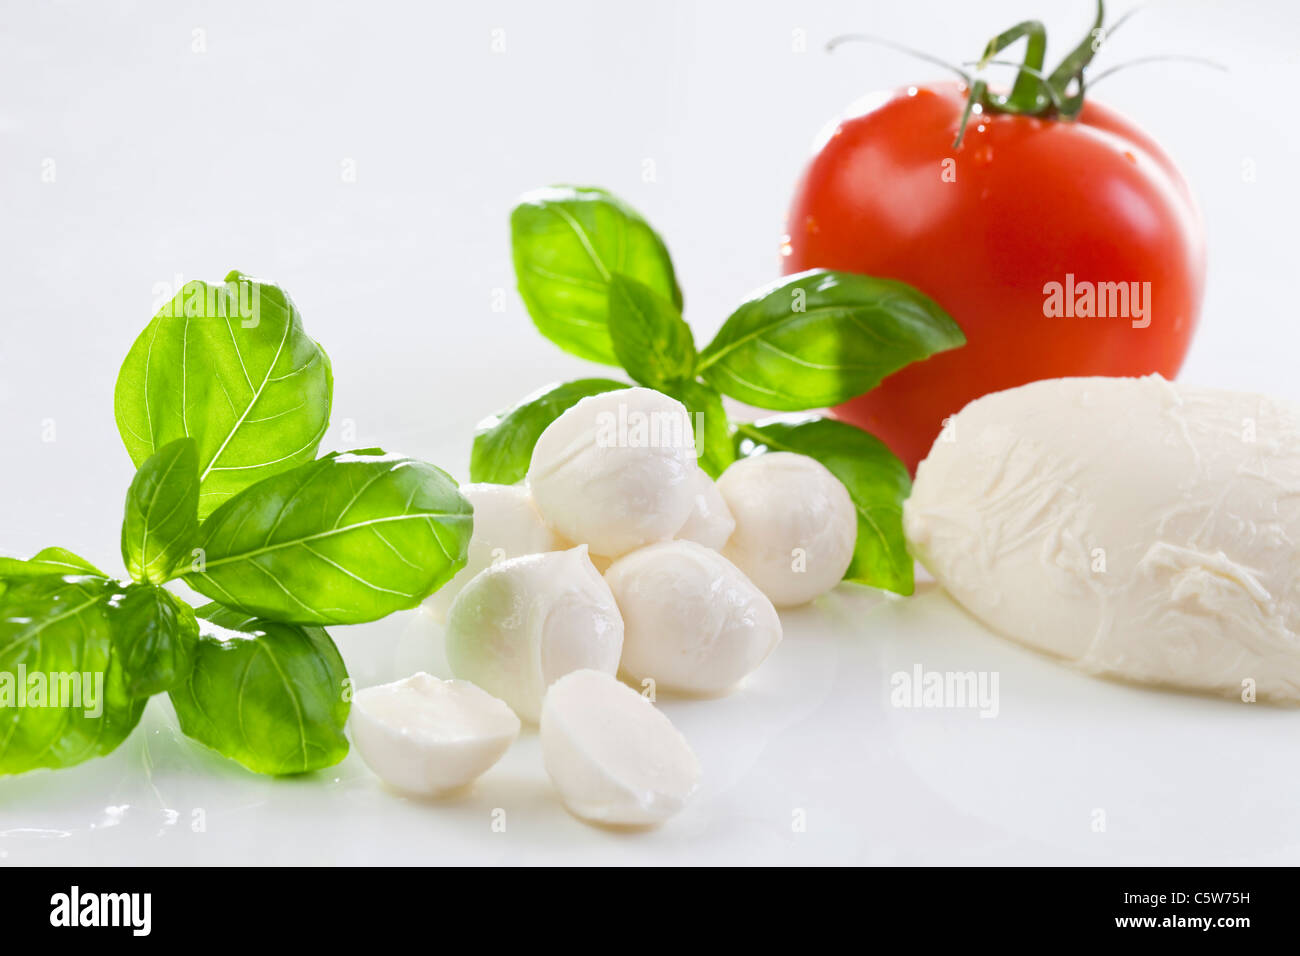 Mozzarella cheese and basil leaves - Stock Image